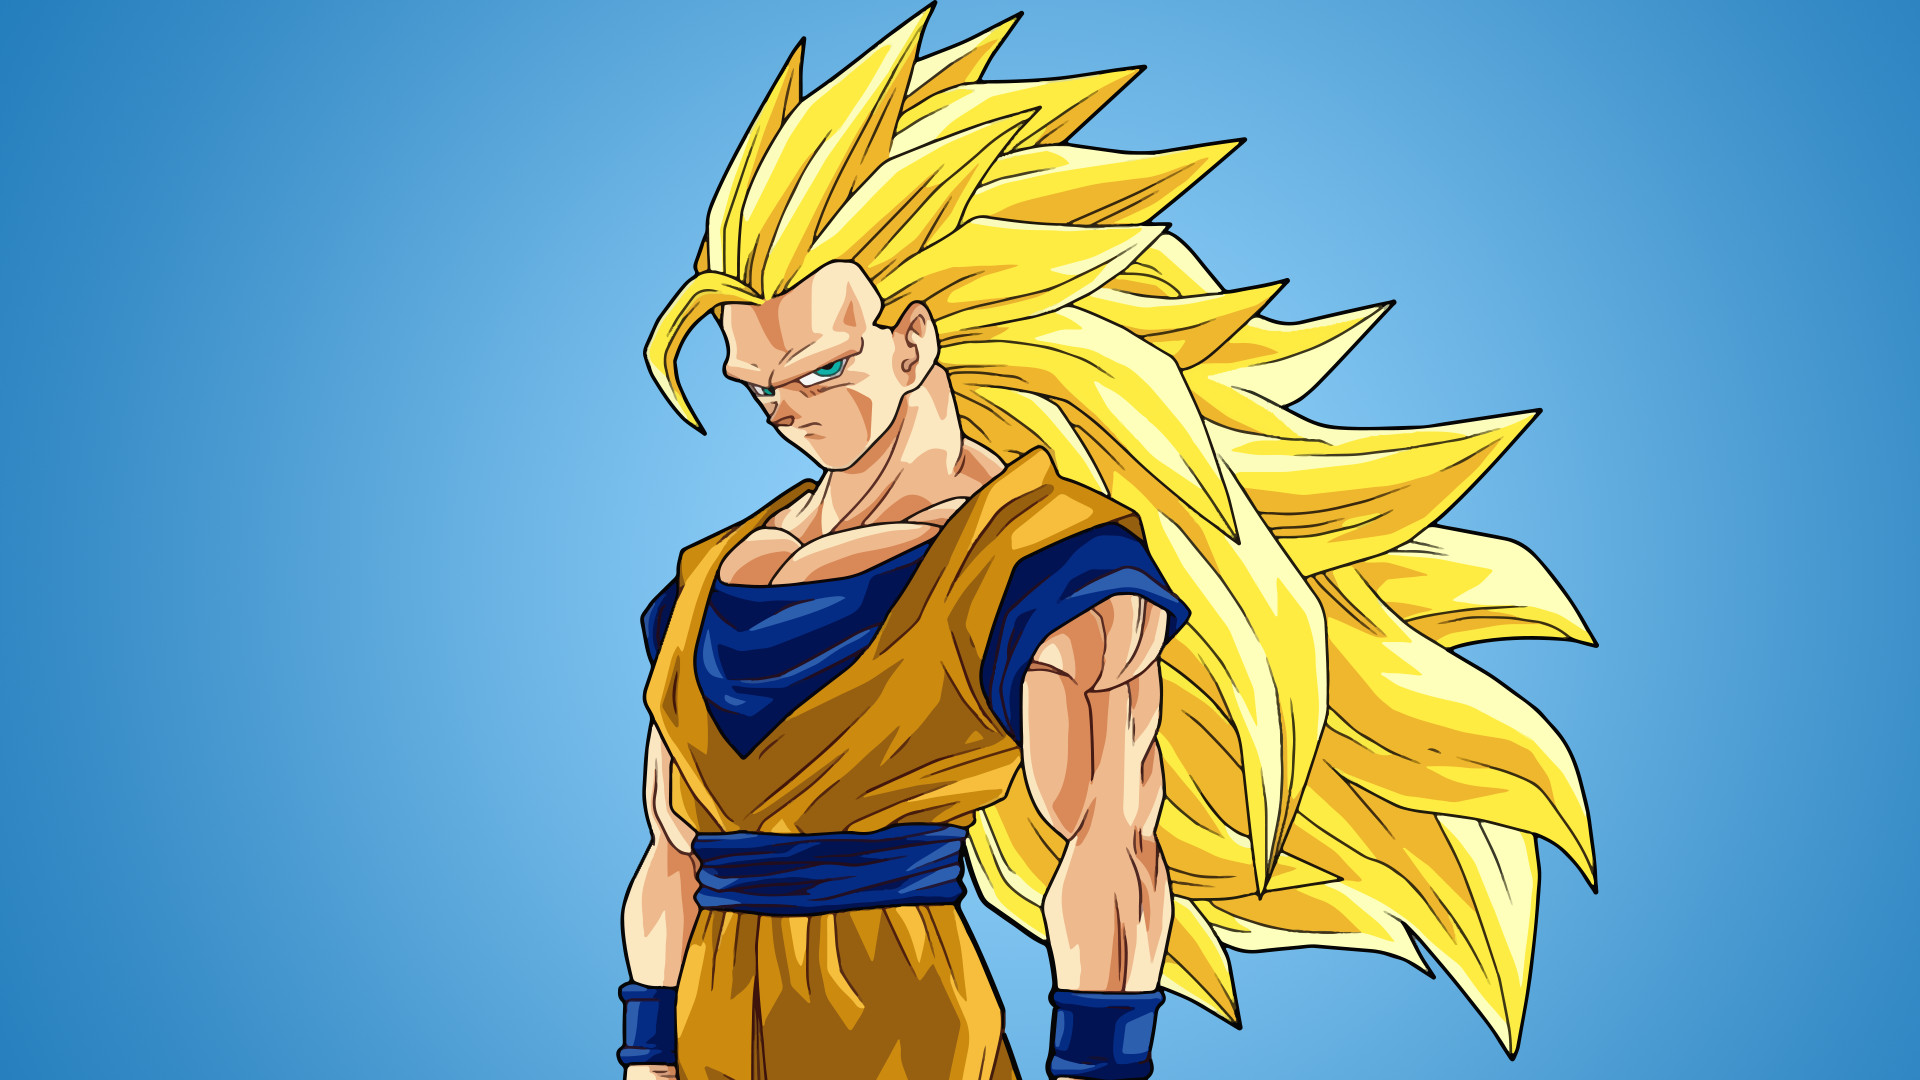 Goku Super Saiyan 3 Wallpapers 1